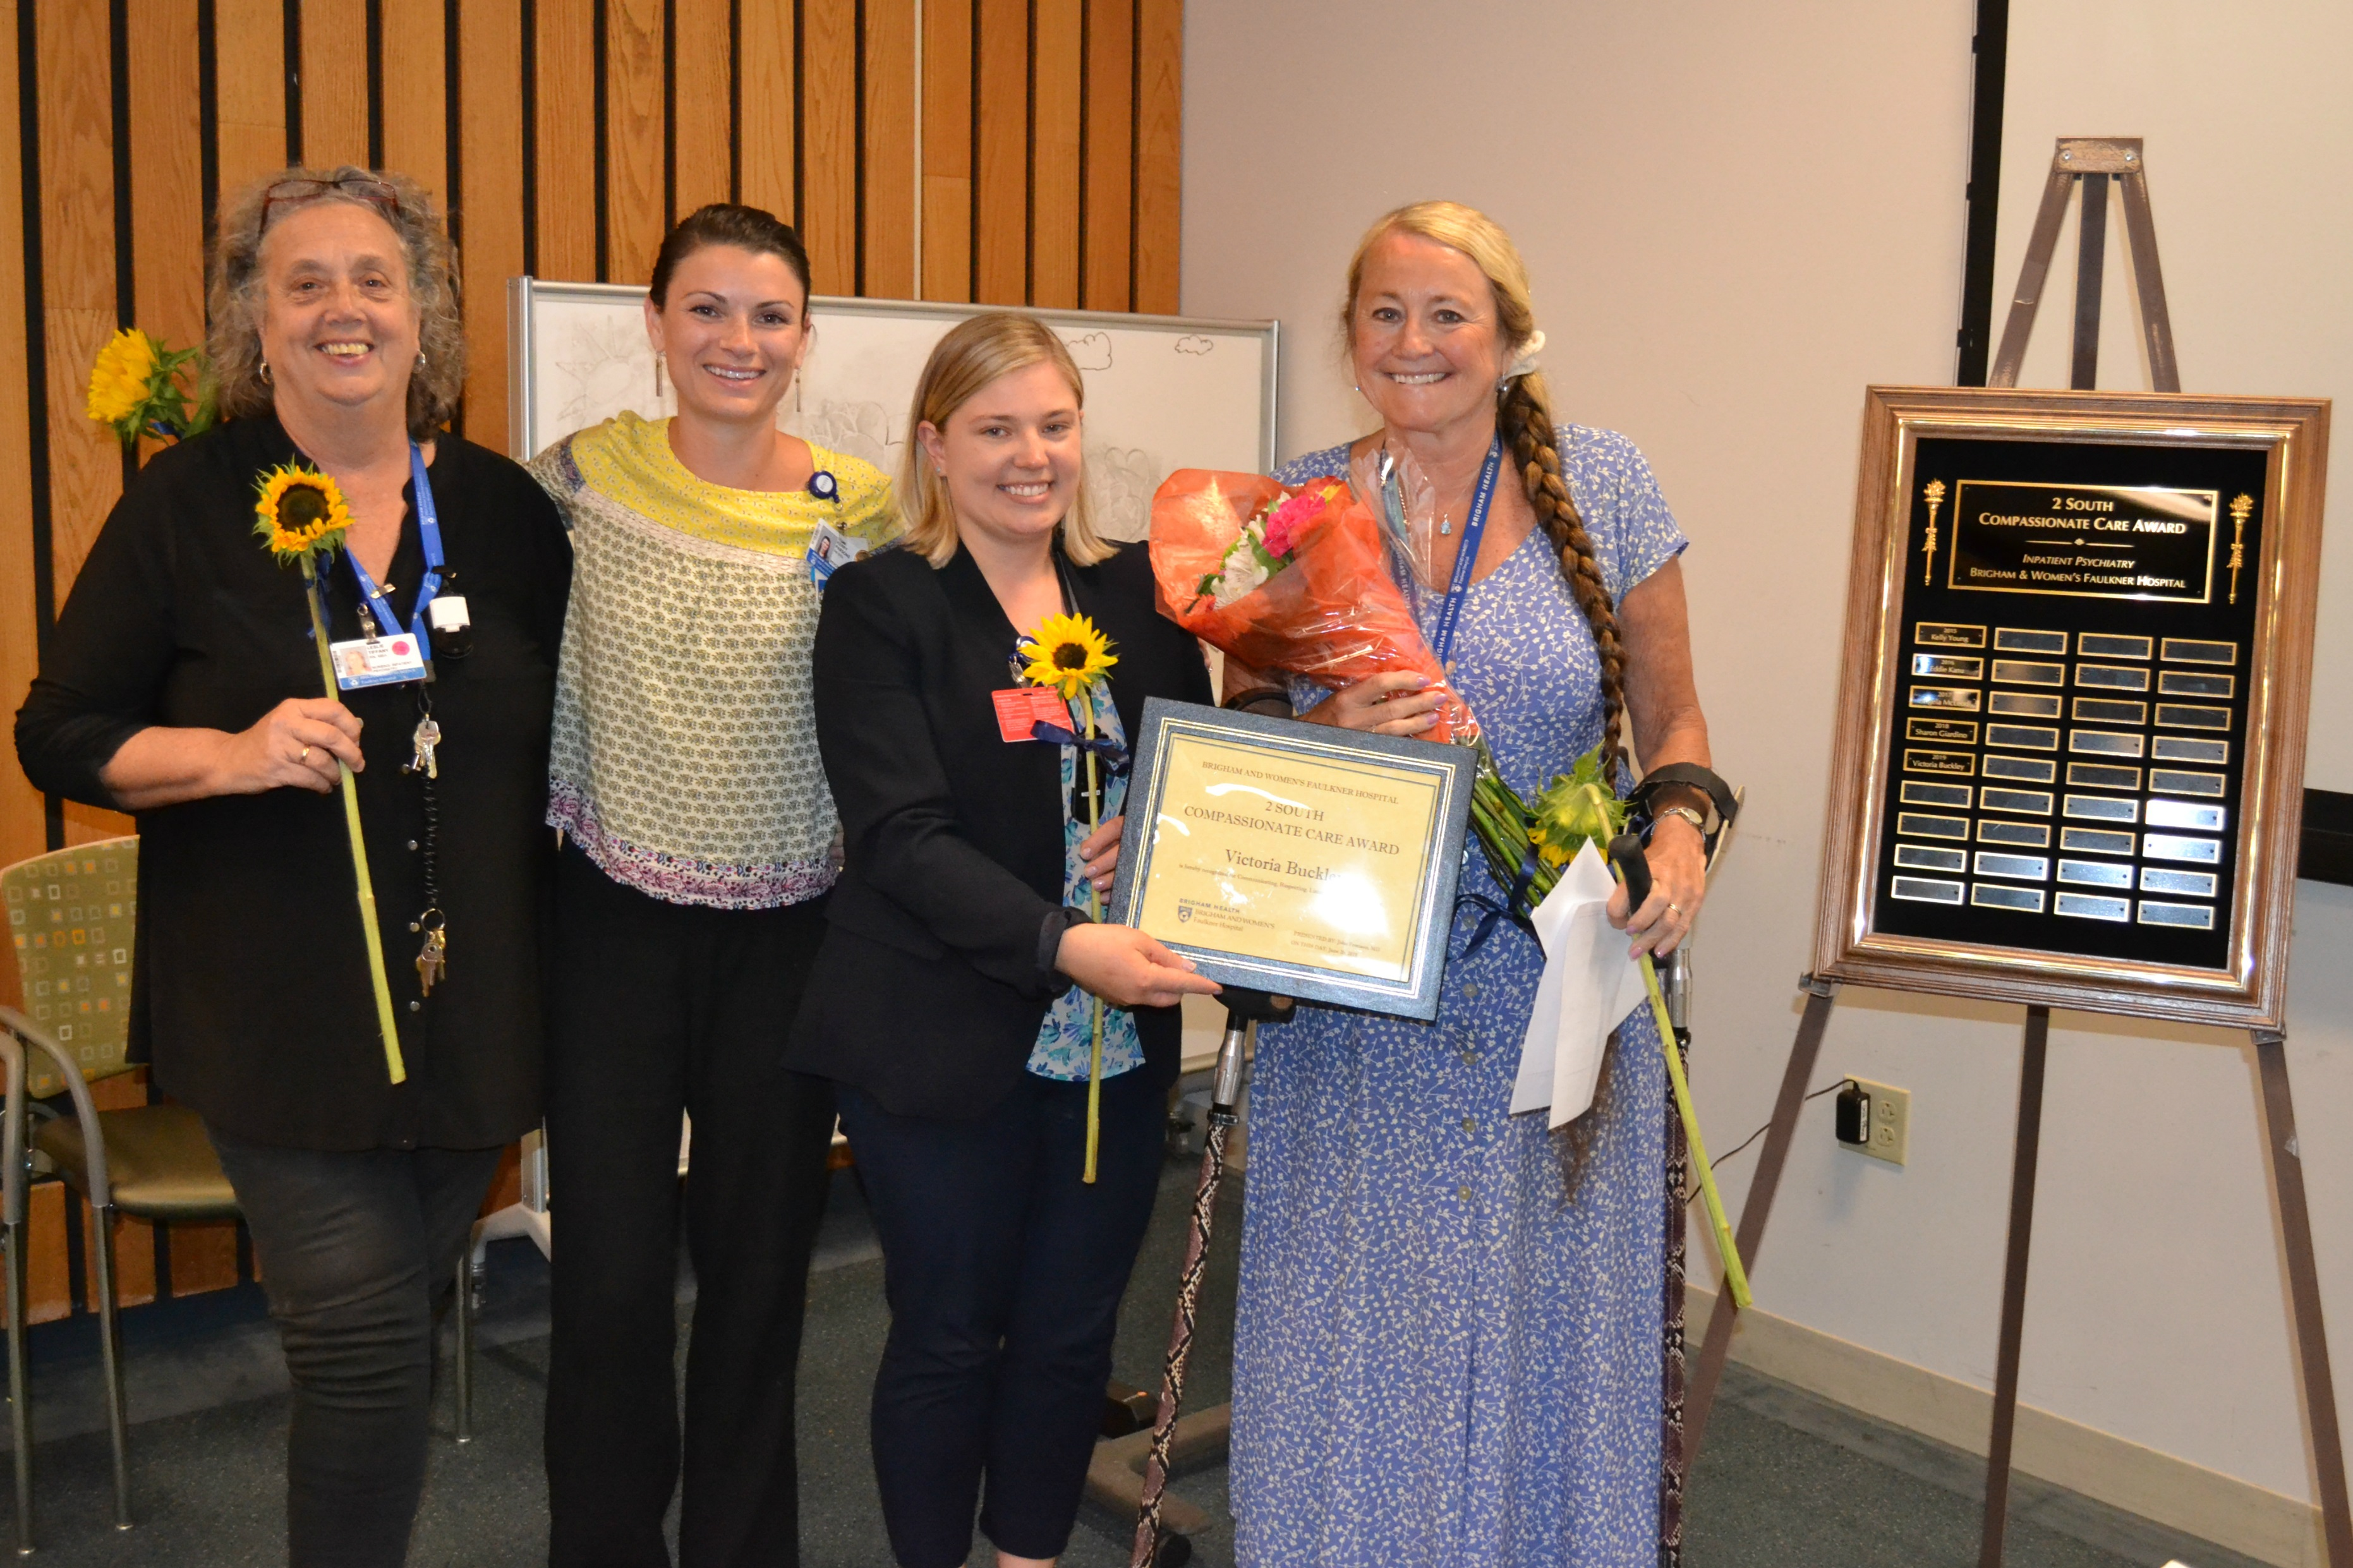 Occupational therapist receives Compassionate Care Award